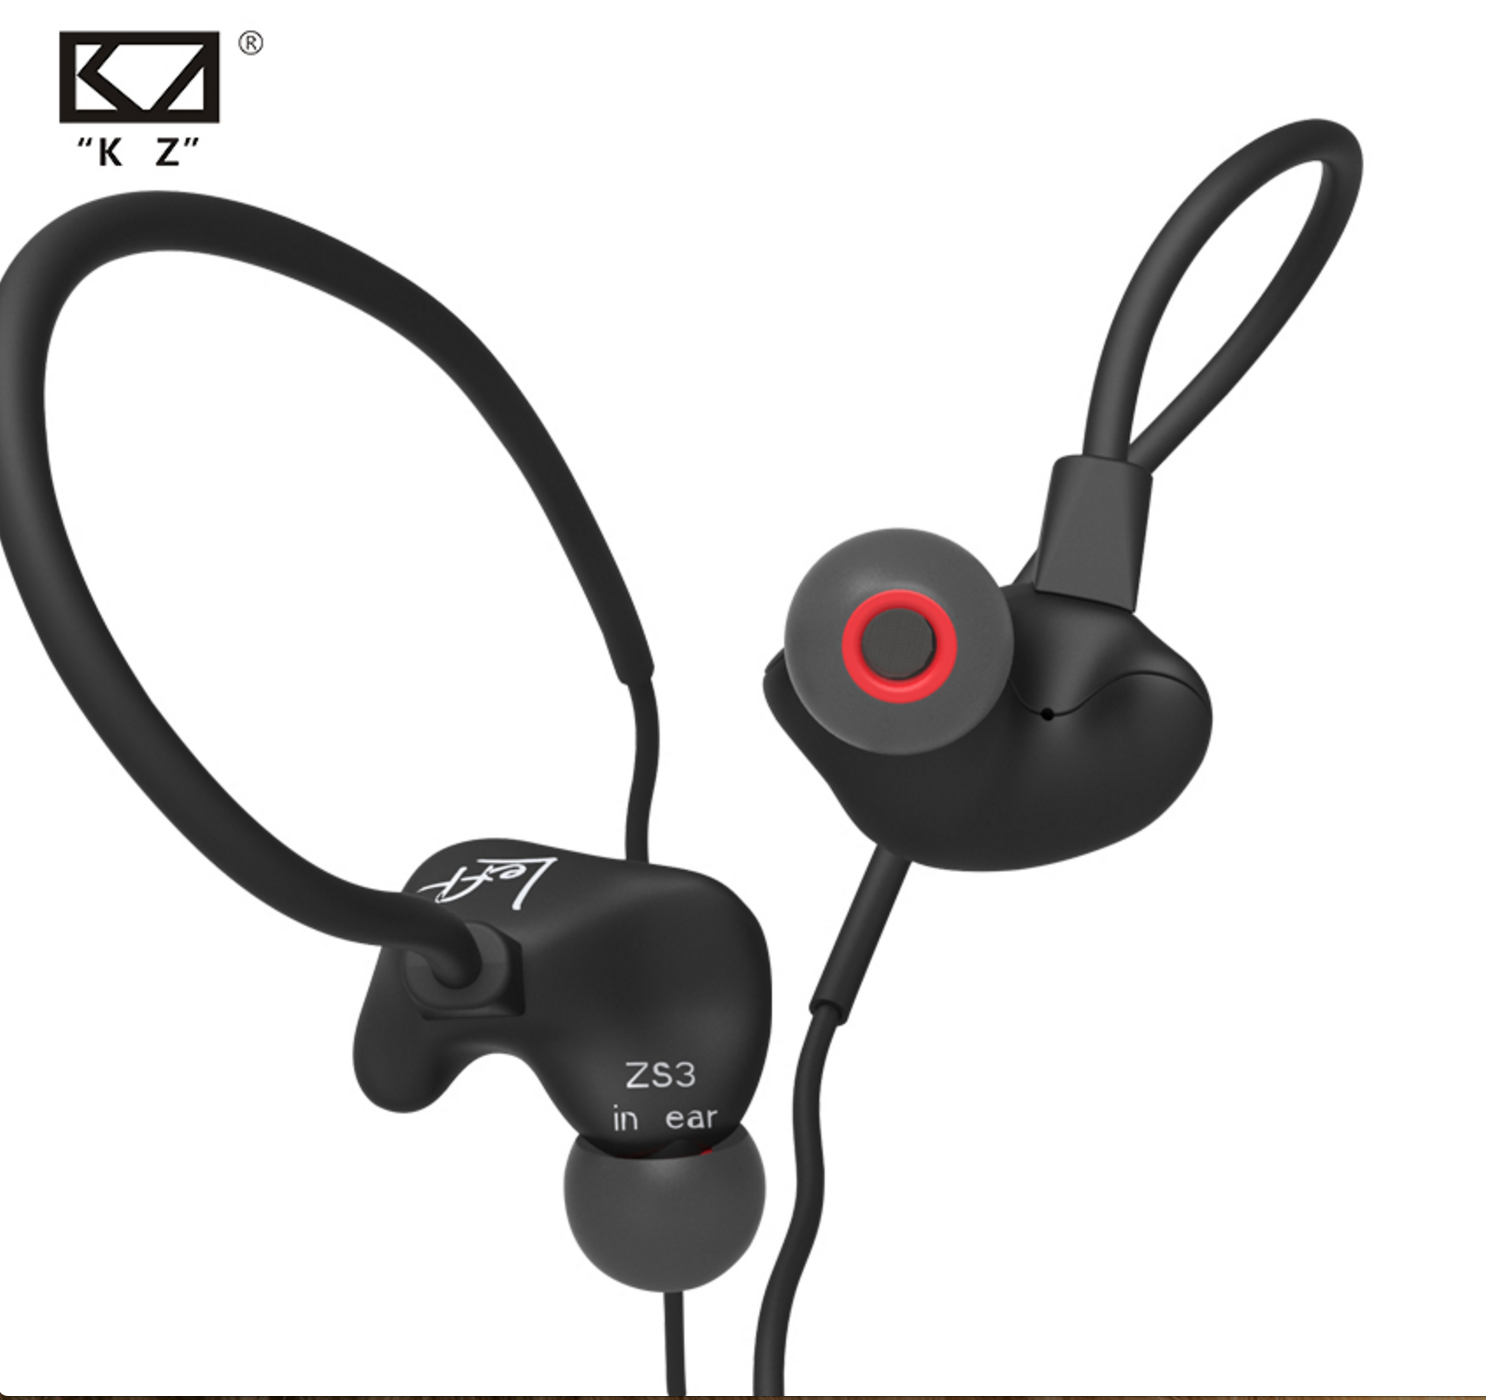 The new KZ ZS3 earphones.  Great earbuds for those on a budget of under $20.